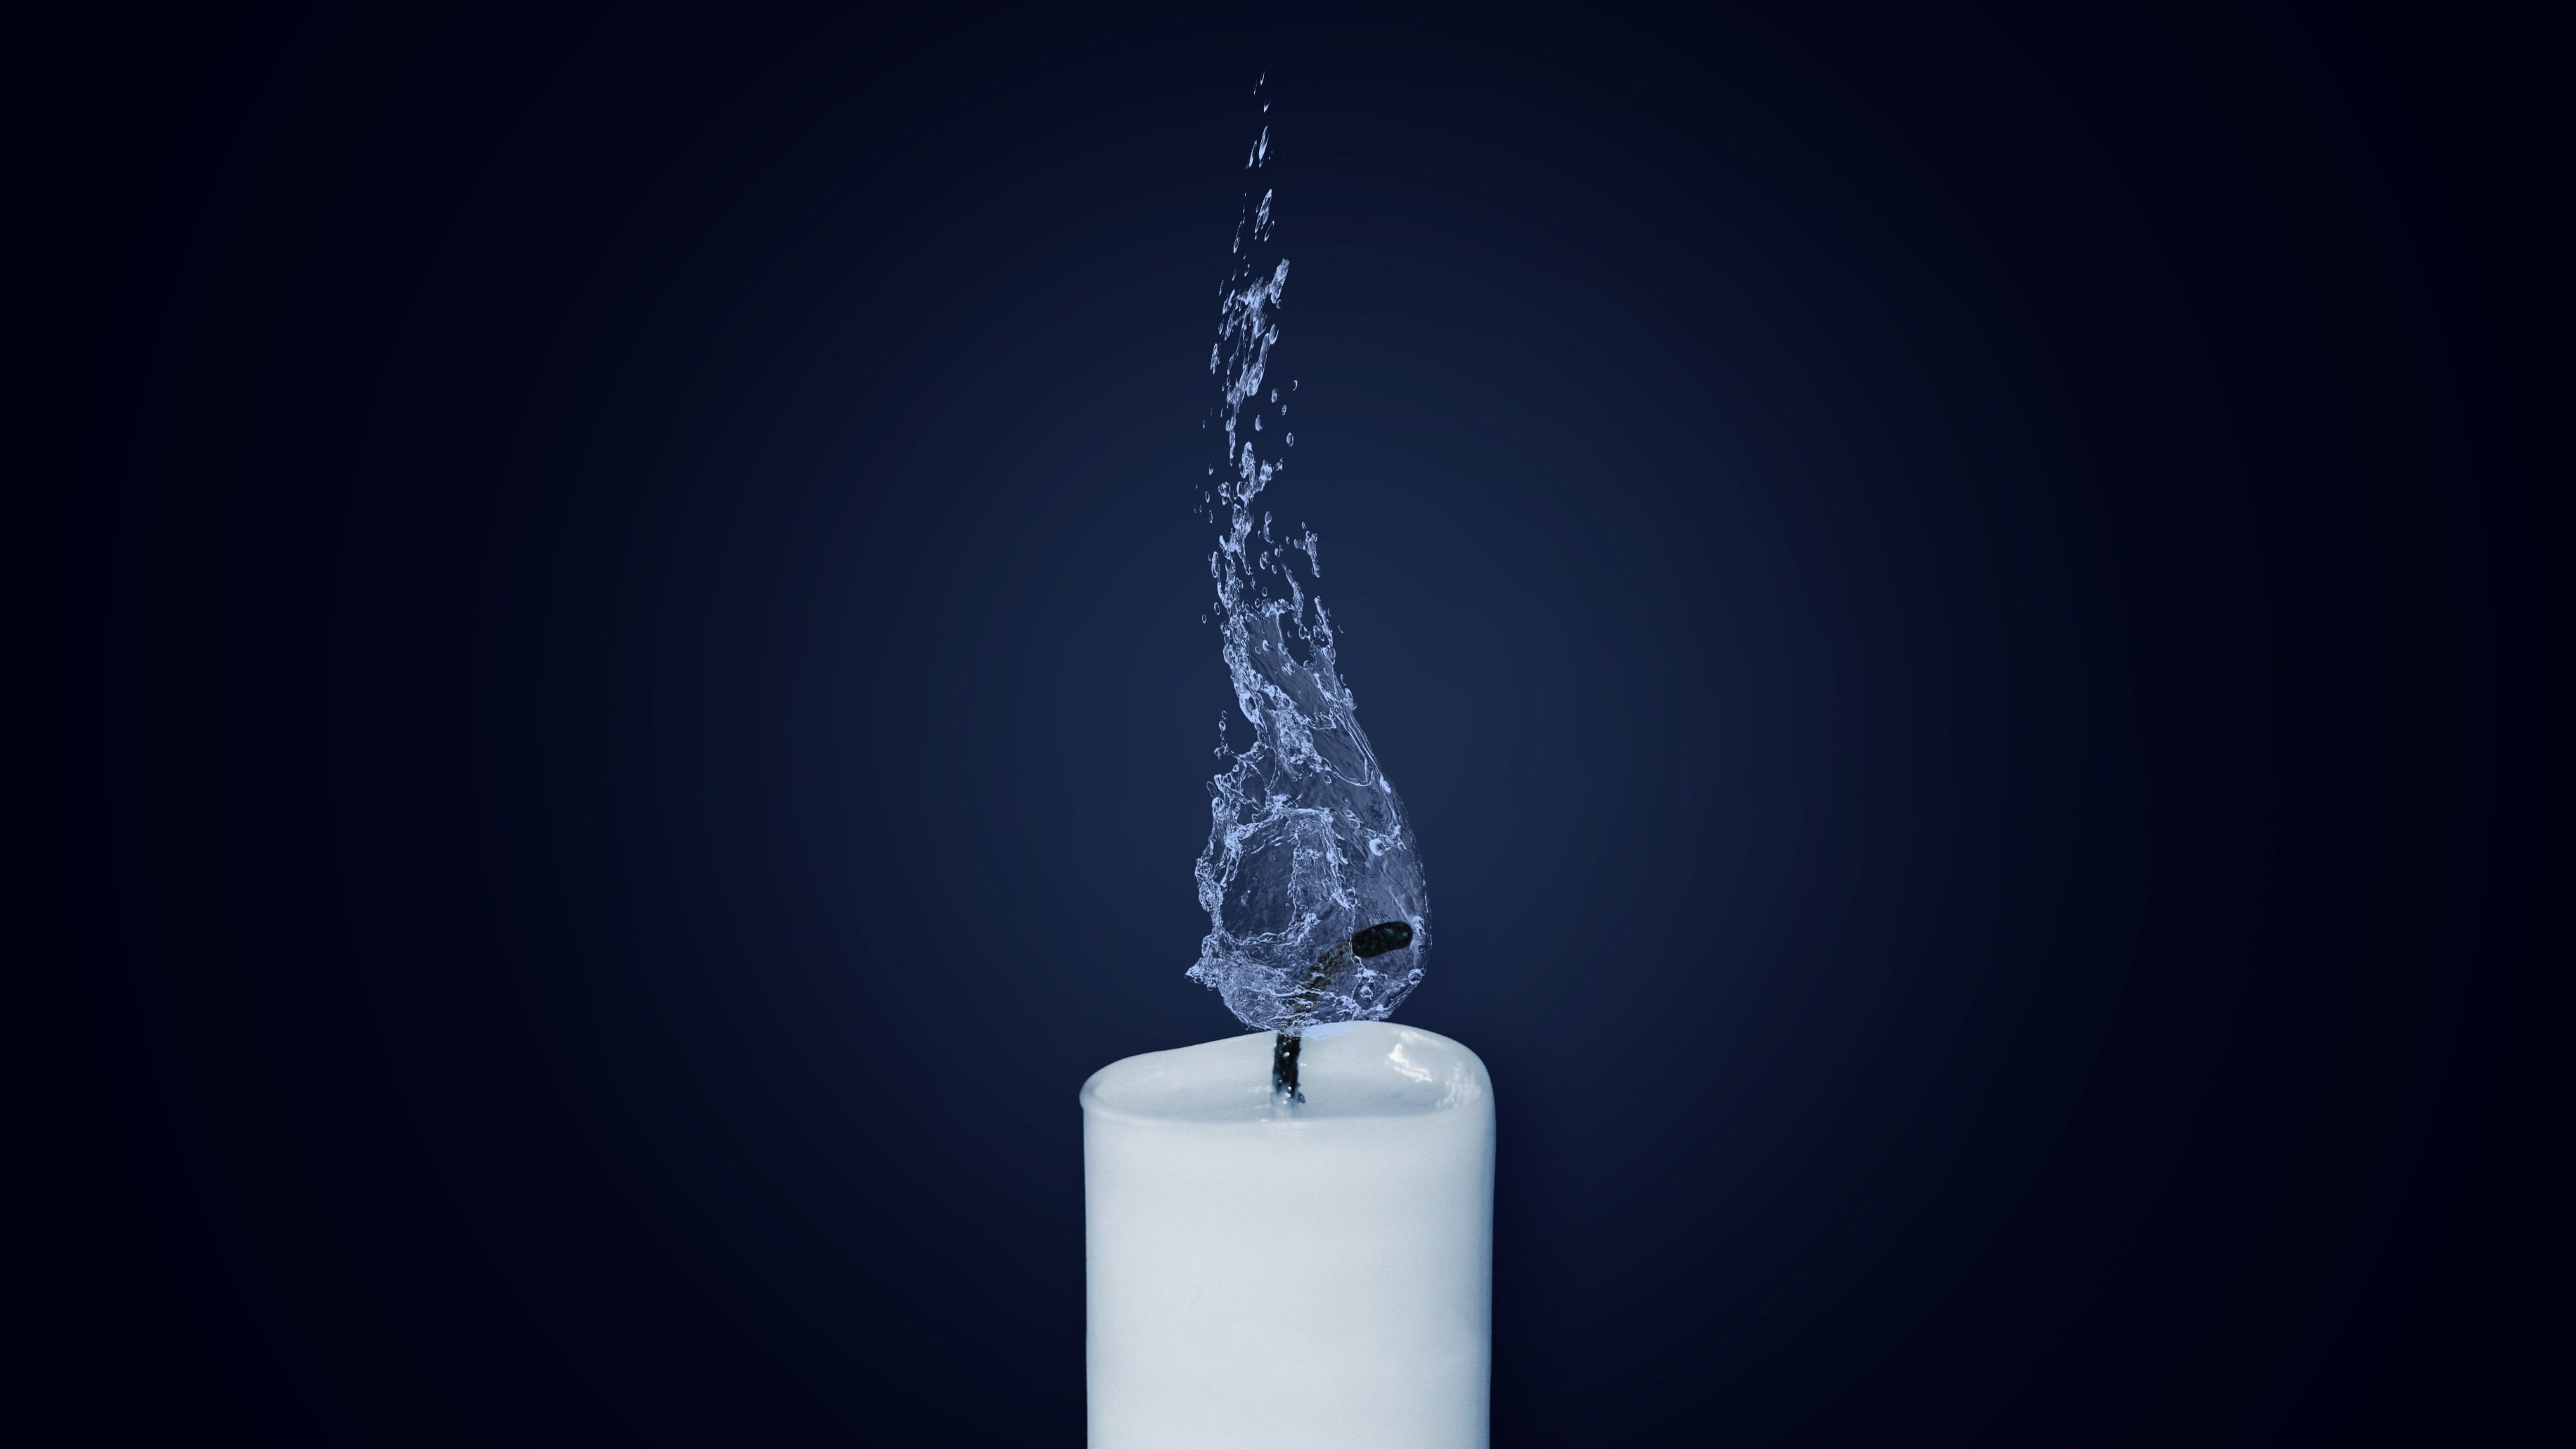 Water Flame. Candlelight | 3840x2160 wallpaper